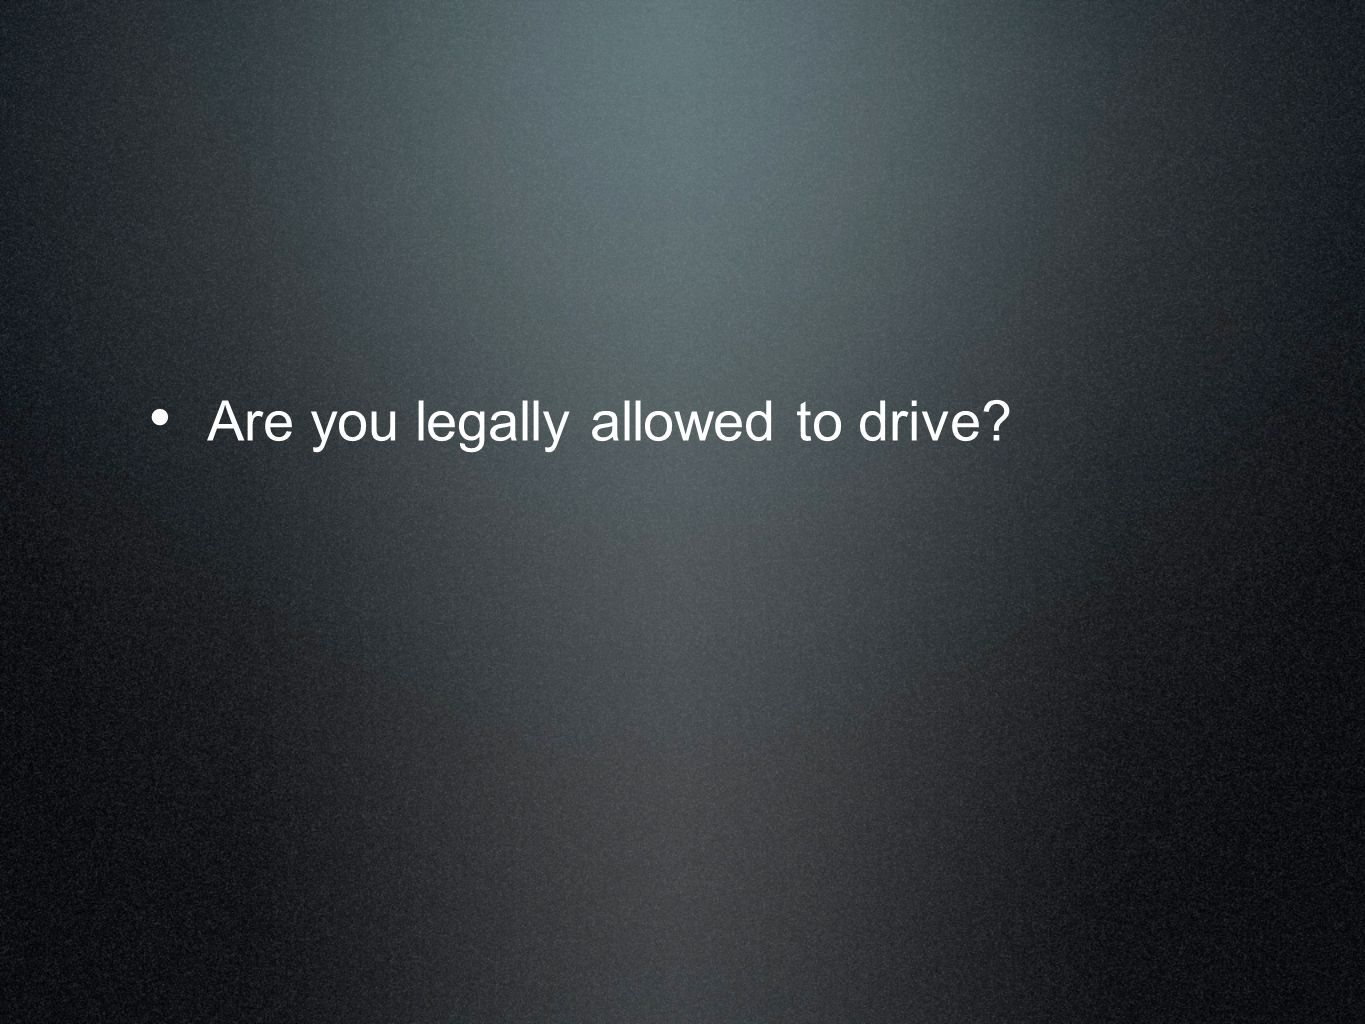 Are you legally allowed to drive?